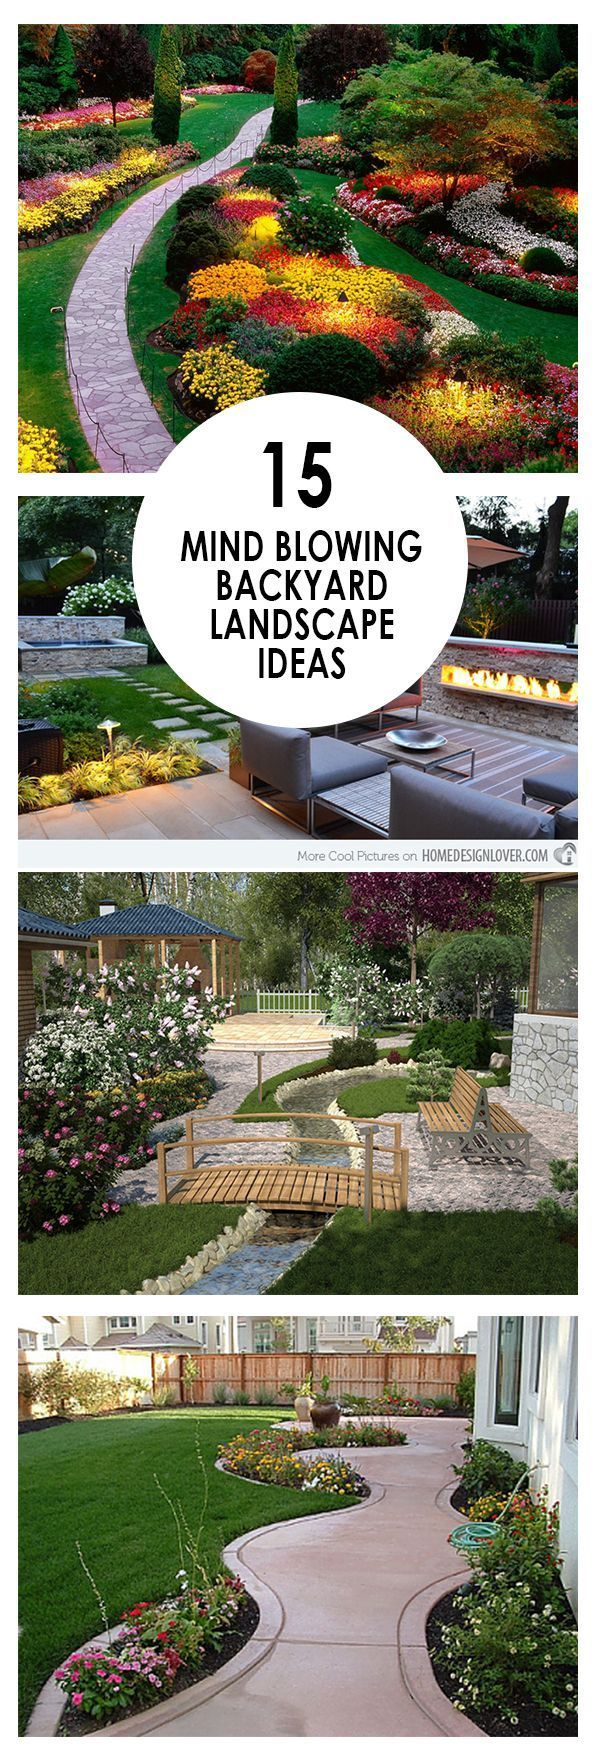 15 Mind-Blowing Backyard Landscape Ideas ~ Page 10 of 17